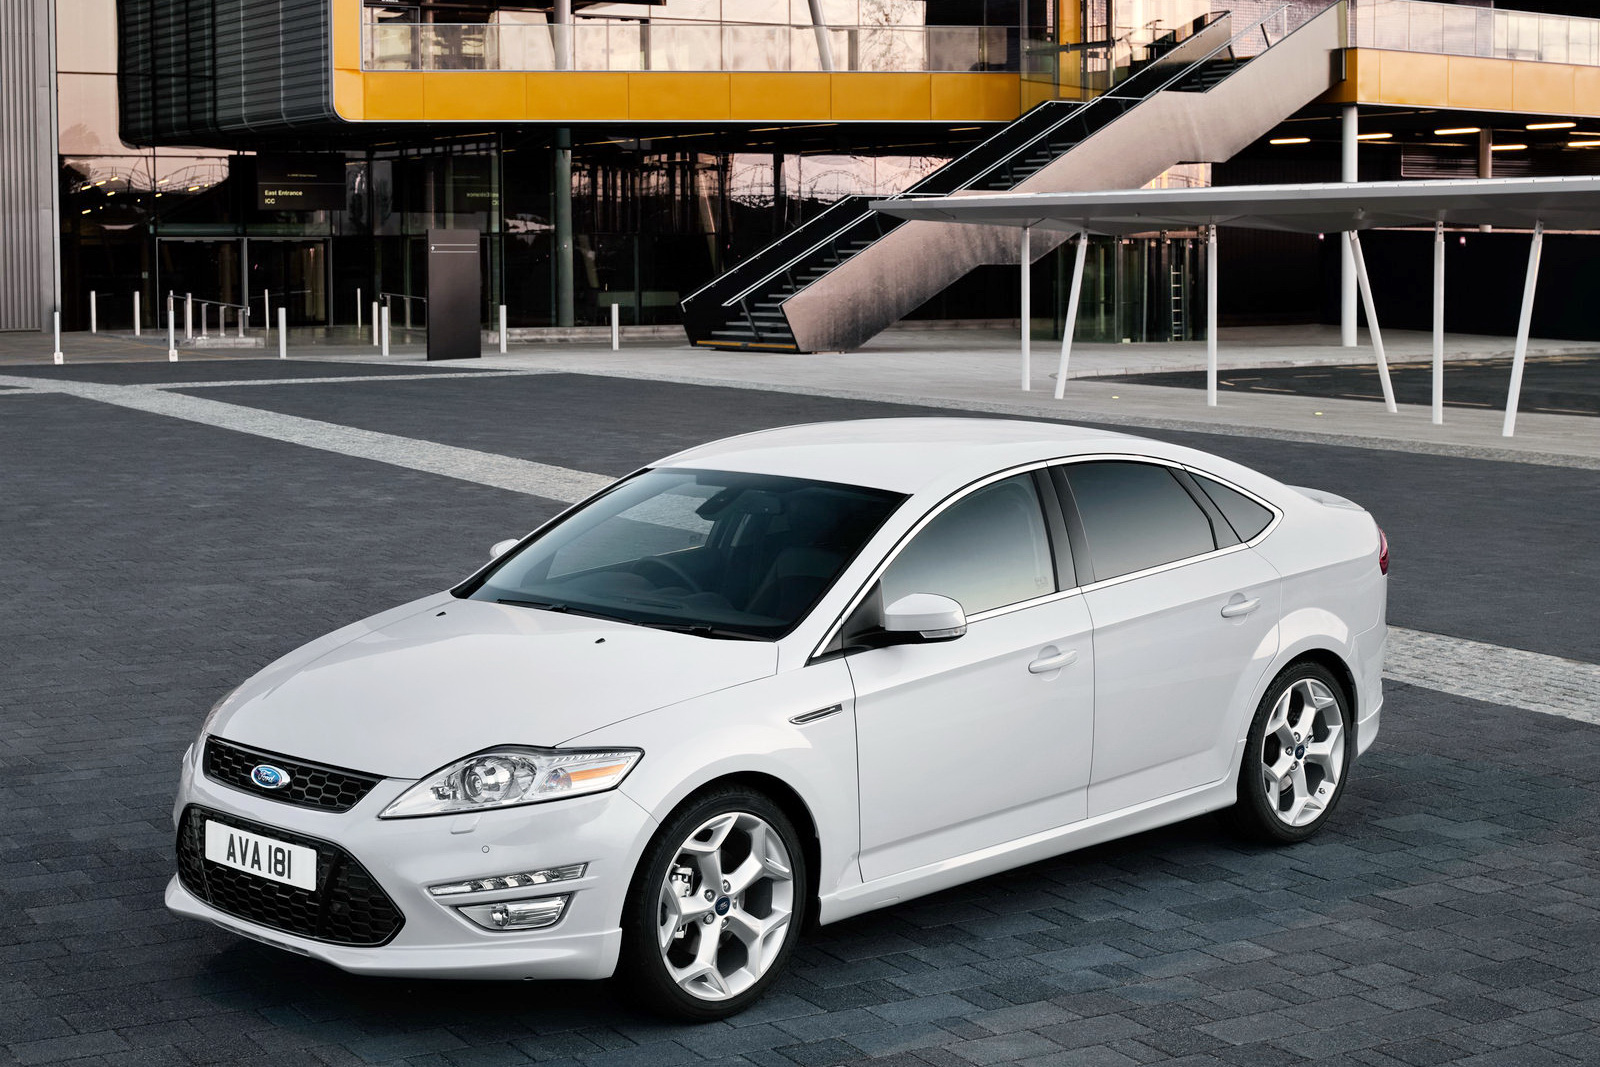 2011 Ford Mondeo 21 2011 Ford Mondeo   Features, Photos, Price